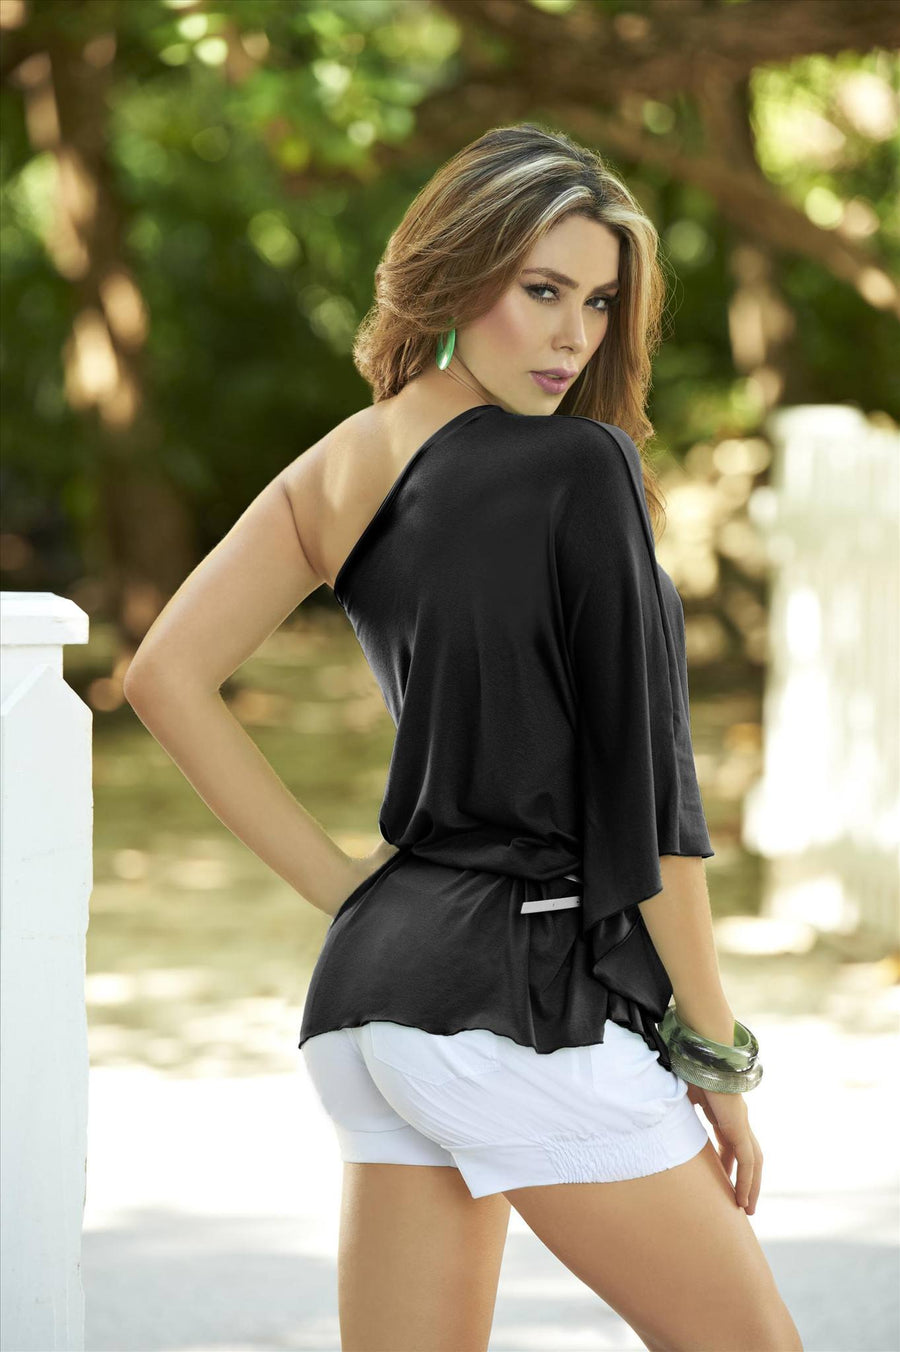 mapale Black / Small Mapale One-Shoulder Asymmetrical Drape Top Shirt with Belt SHC-9782-BLK-S-MA Apparel & Accessories > Clothing > Shirts & Tops